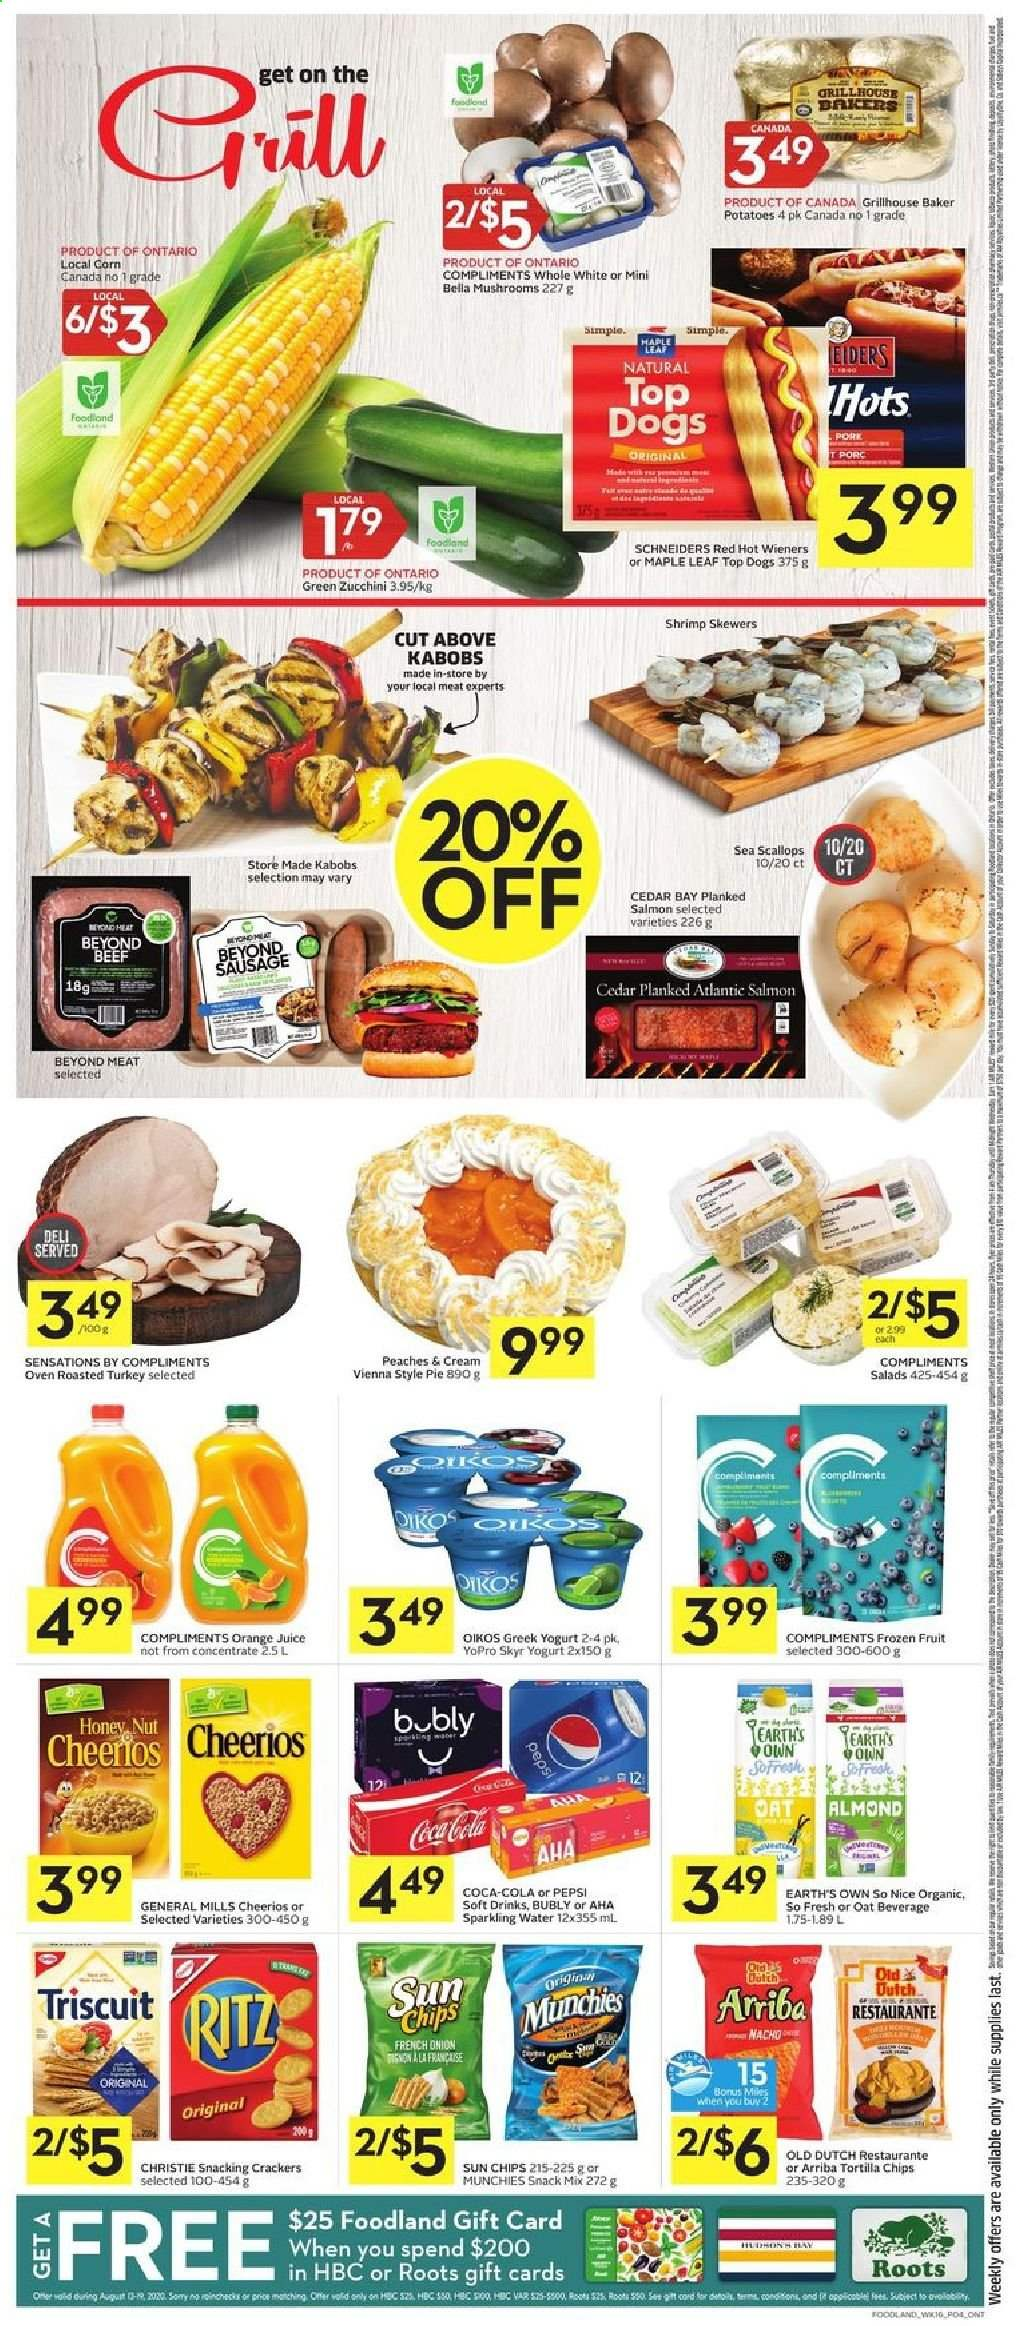 Foodland Flyer - August 13, 2020 - August 19, 2020 - Sales products - beef meat, bella, corn, crackers, cream, greek yogurt, mushrooms, salmon, sausage, scallops, shrimp, tortilla chips, turkey, yogurt, zucchini, honey, potatoes, cheerios, peaches, pepsi, oven, onion, orange juice, organic, chips, juice, pie, snack, sparkling water, gift card, ritz, porc, tortilla, orange, fruits. Page 6.